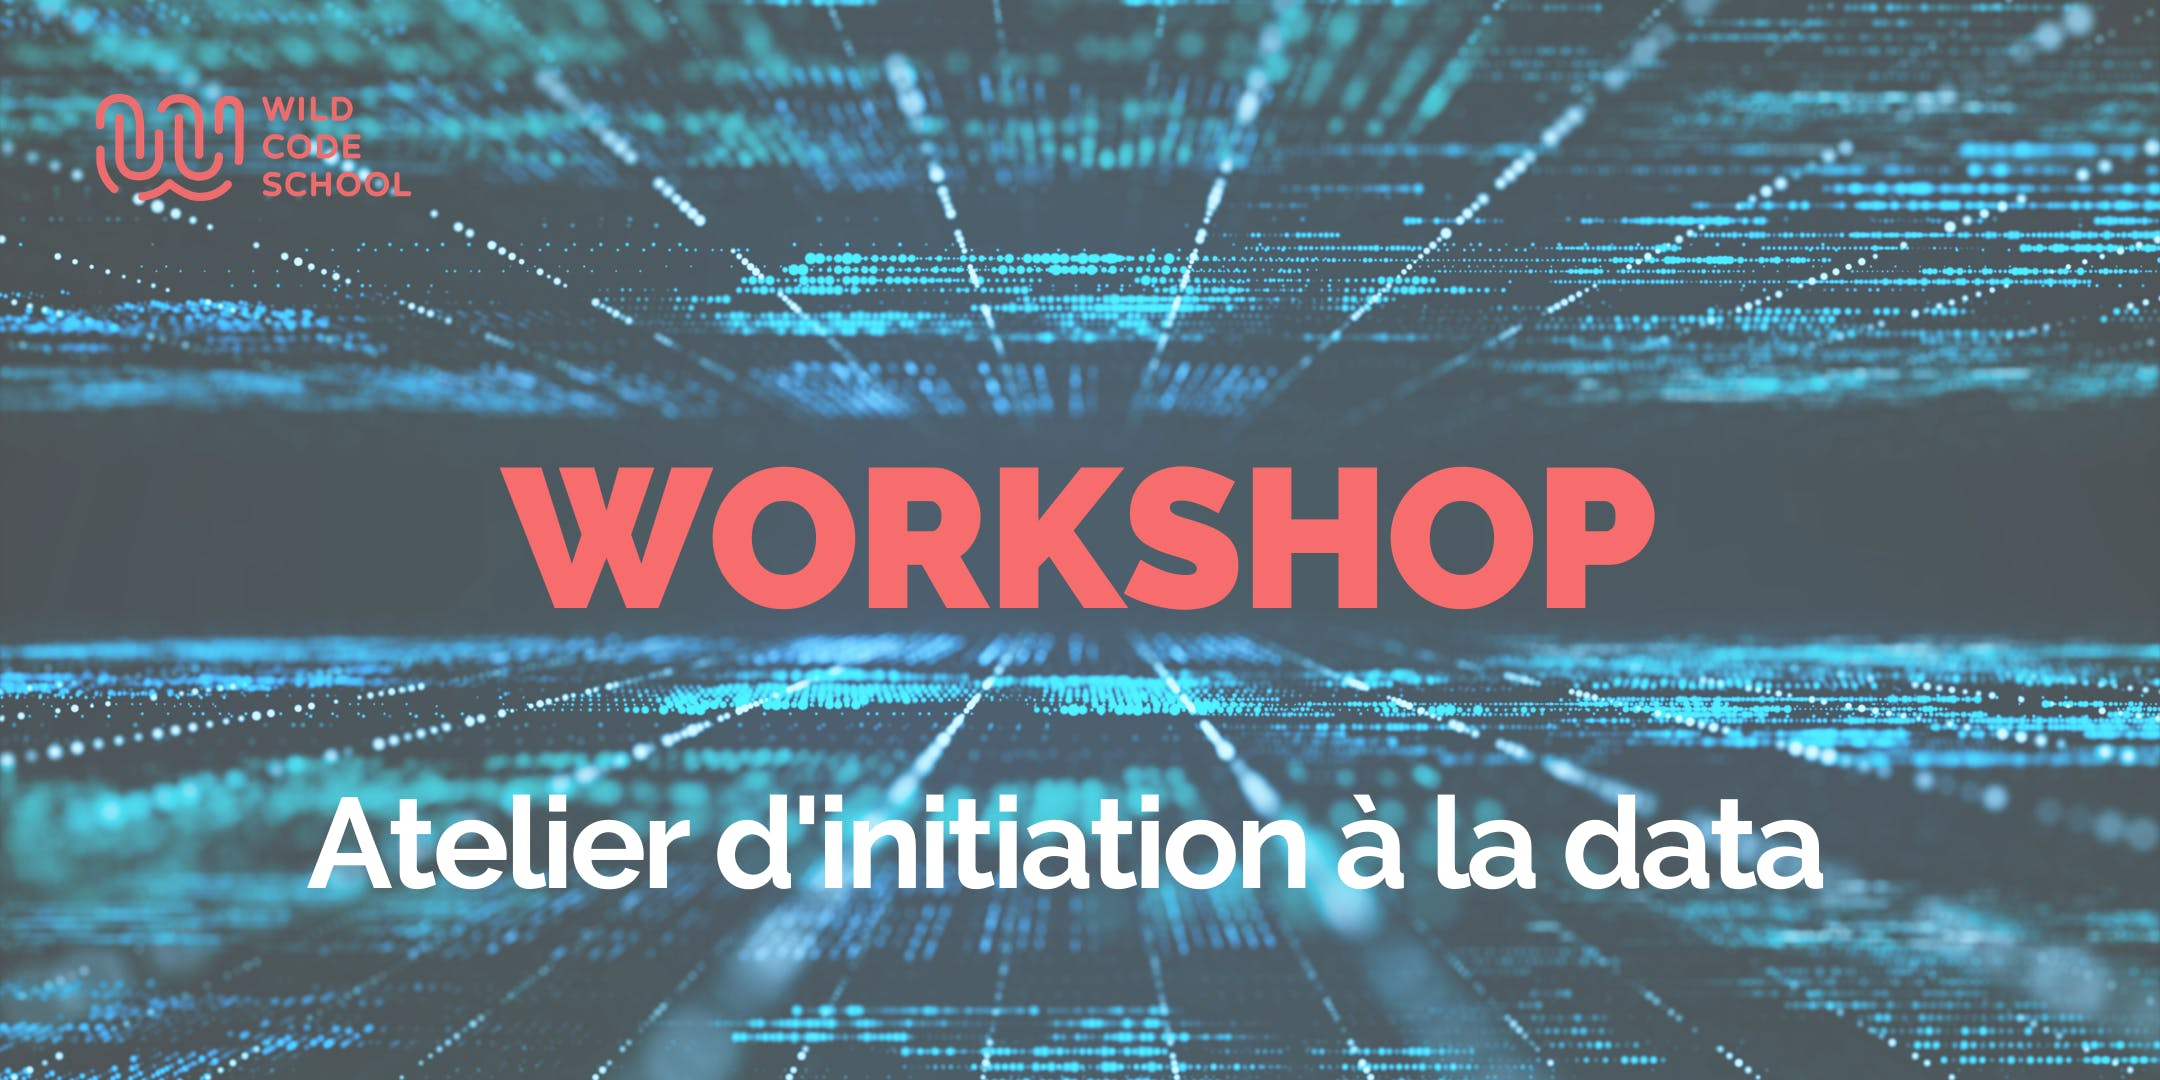 Workshop :  Atelier d'initiation à la Data - Wild Code School  Bruxelles